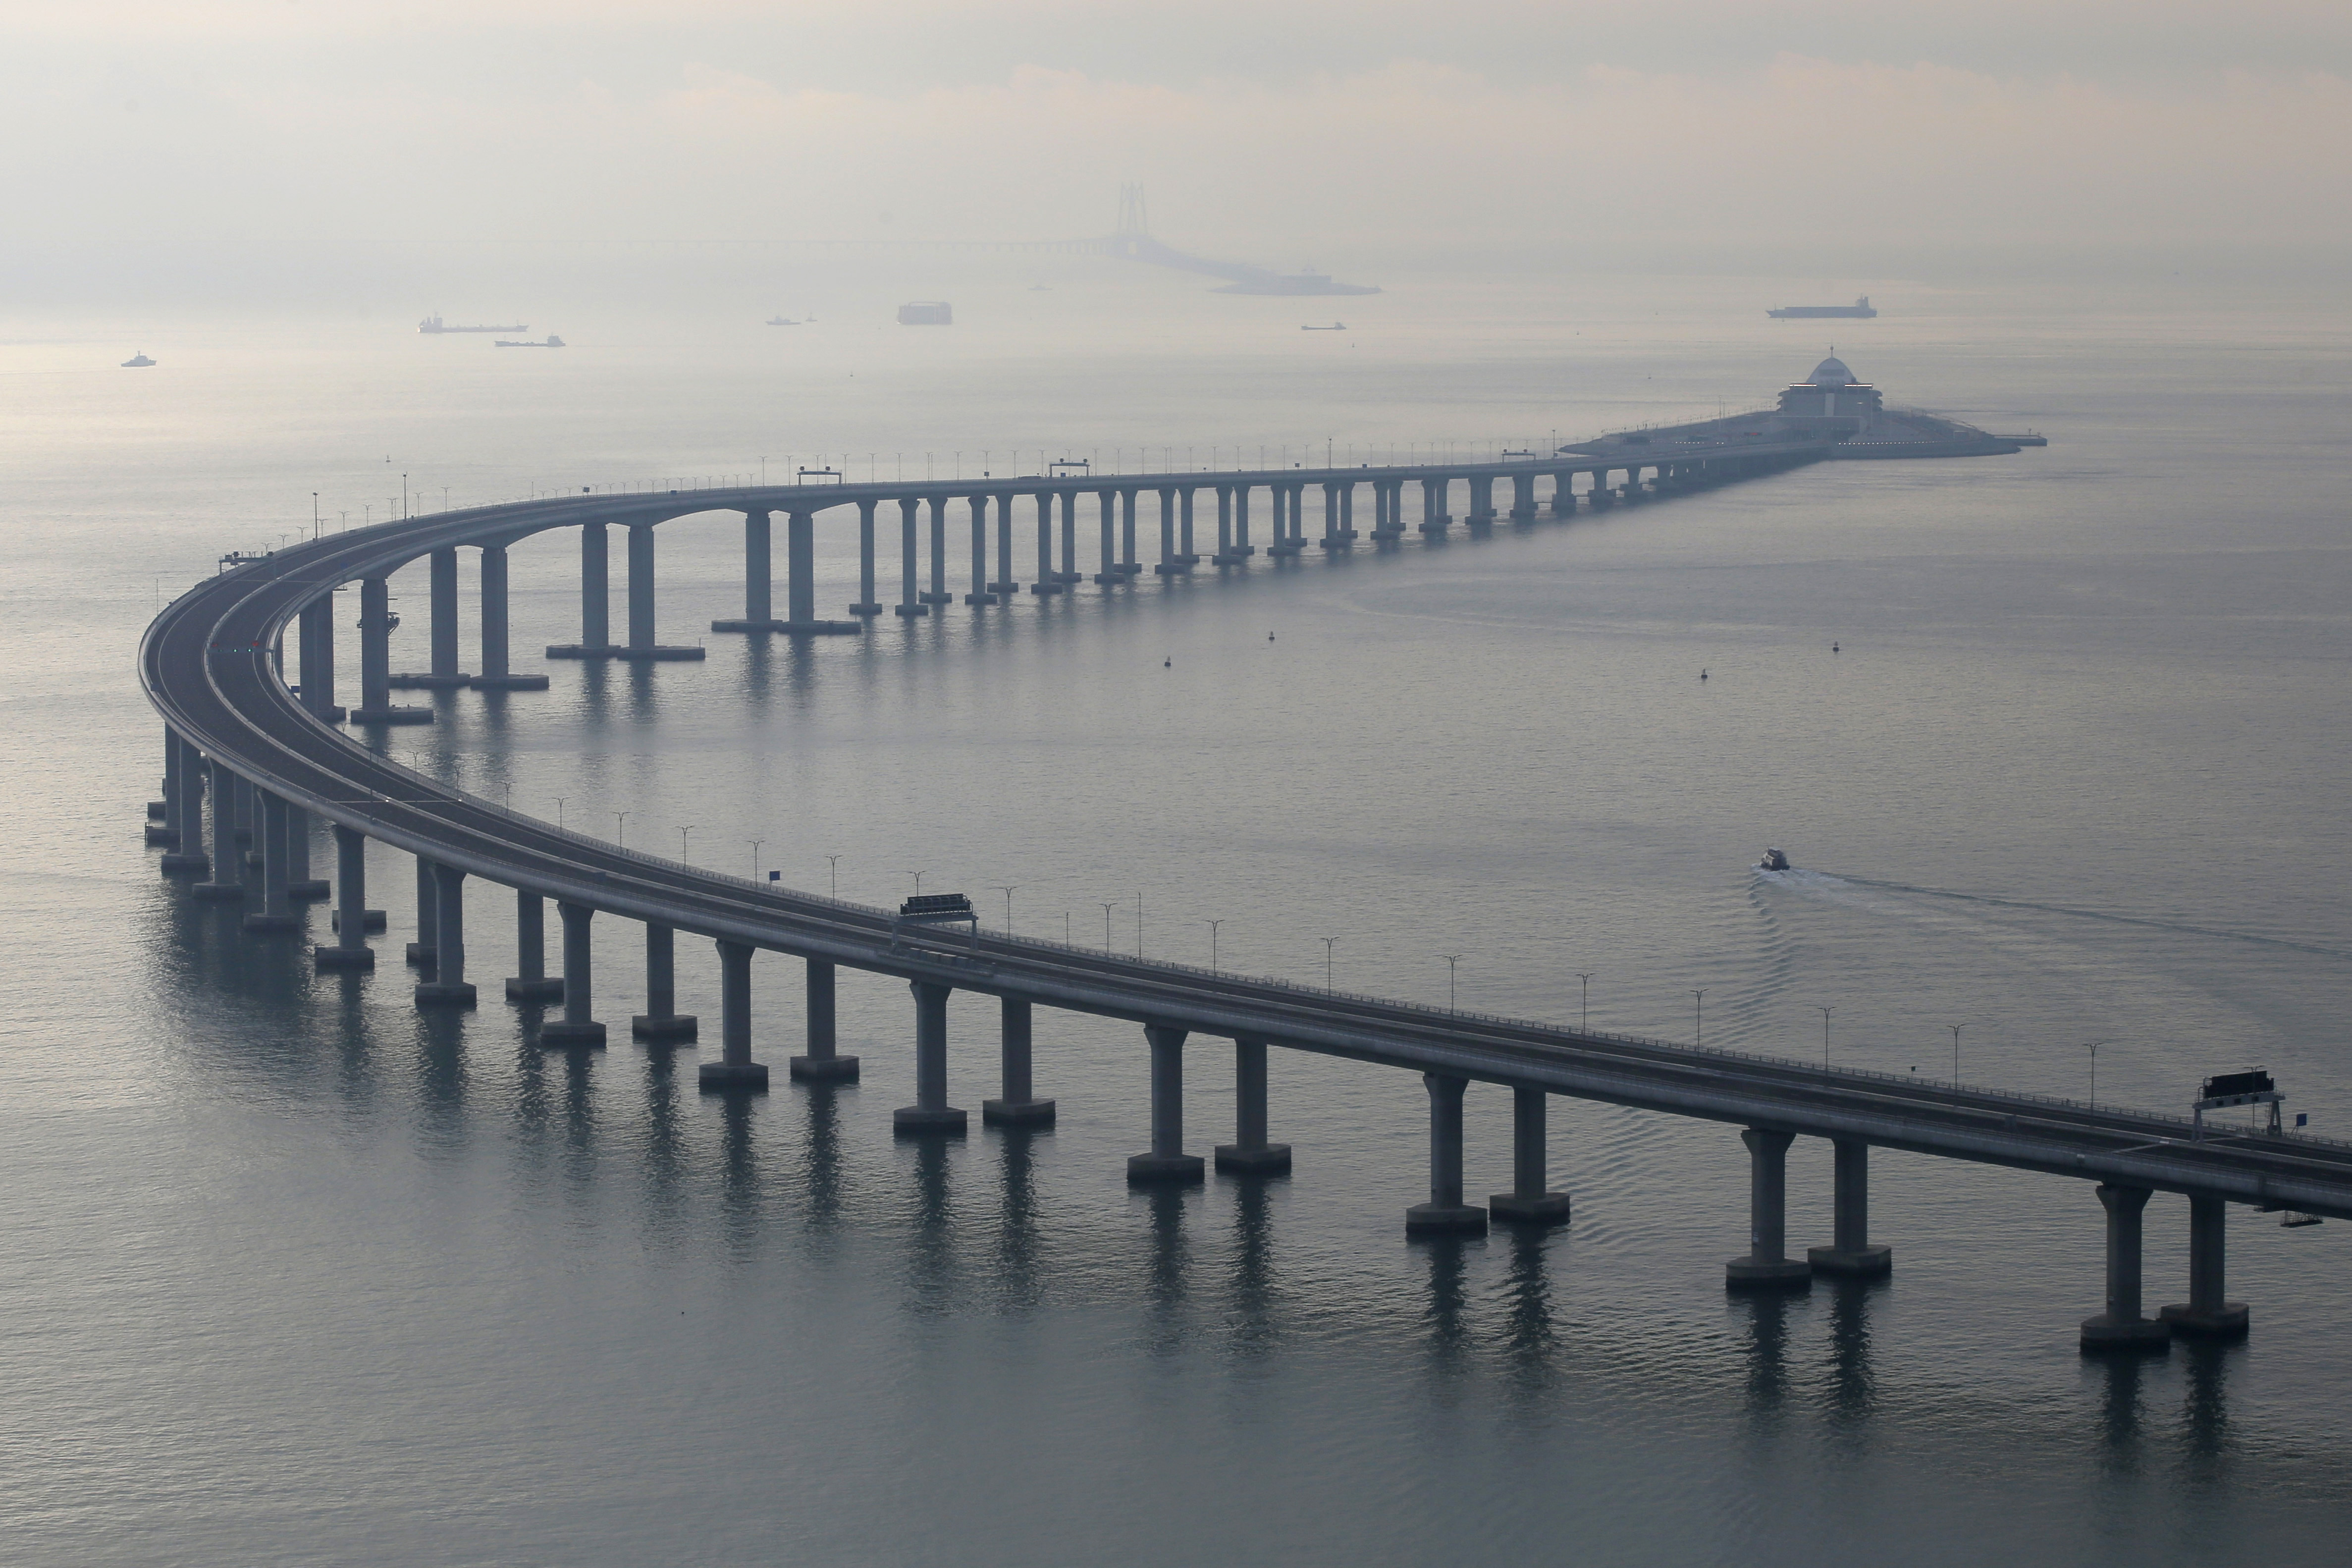 The Hong Kong-Zhuhai-Macau Bridge is seen in Hong Kong. The bridge, the world's longest cross-sea project, which has a total length of 55 kilometers is a physical symbol of the formation of the Greater Bay Area.